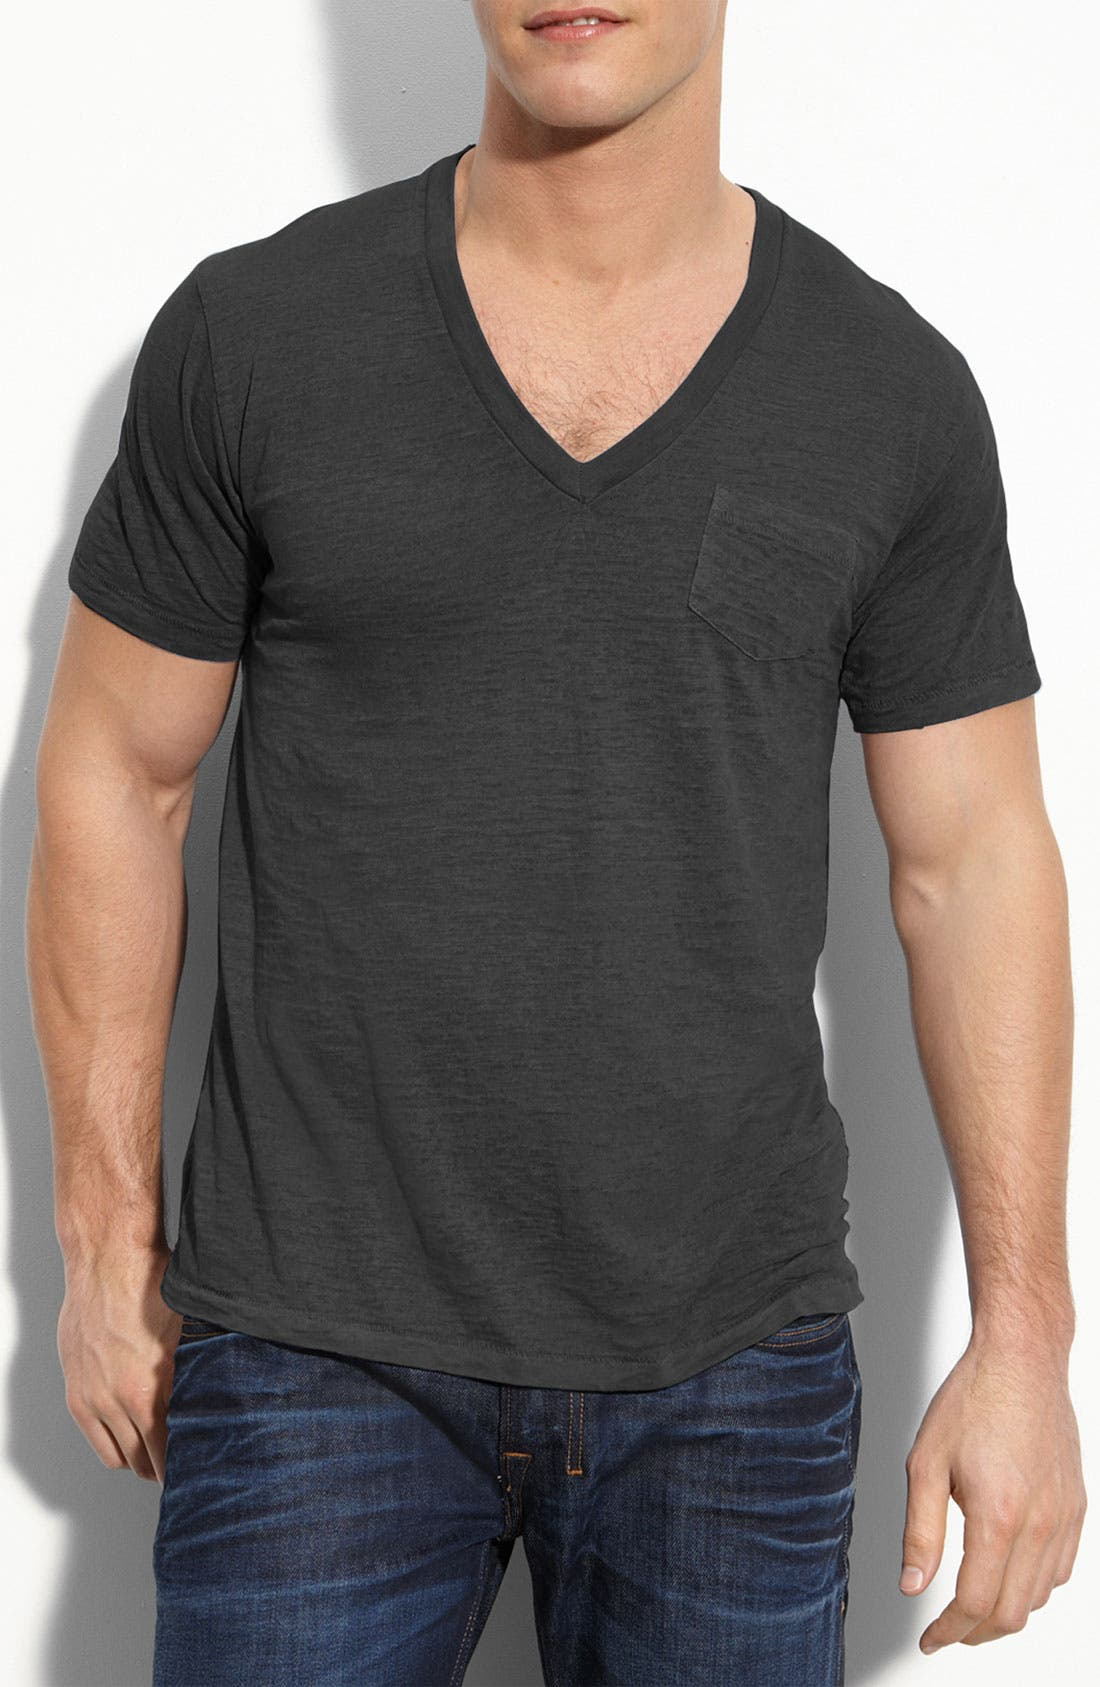 Alternate Image 1 Selected - Alternative Burnout V-Neck T-Shirt